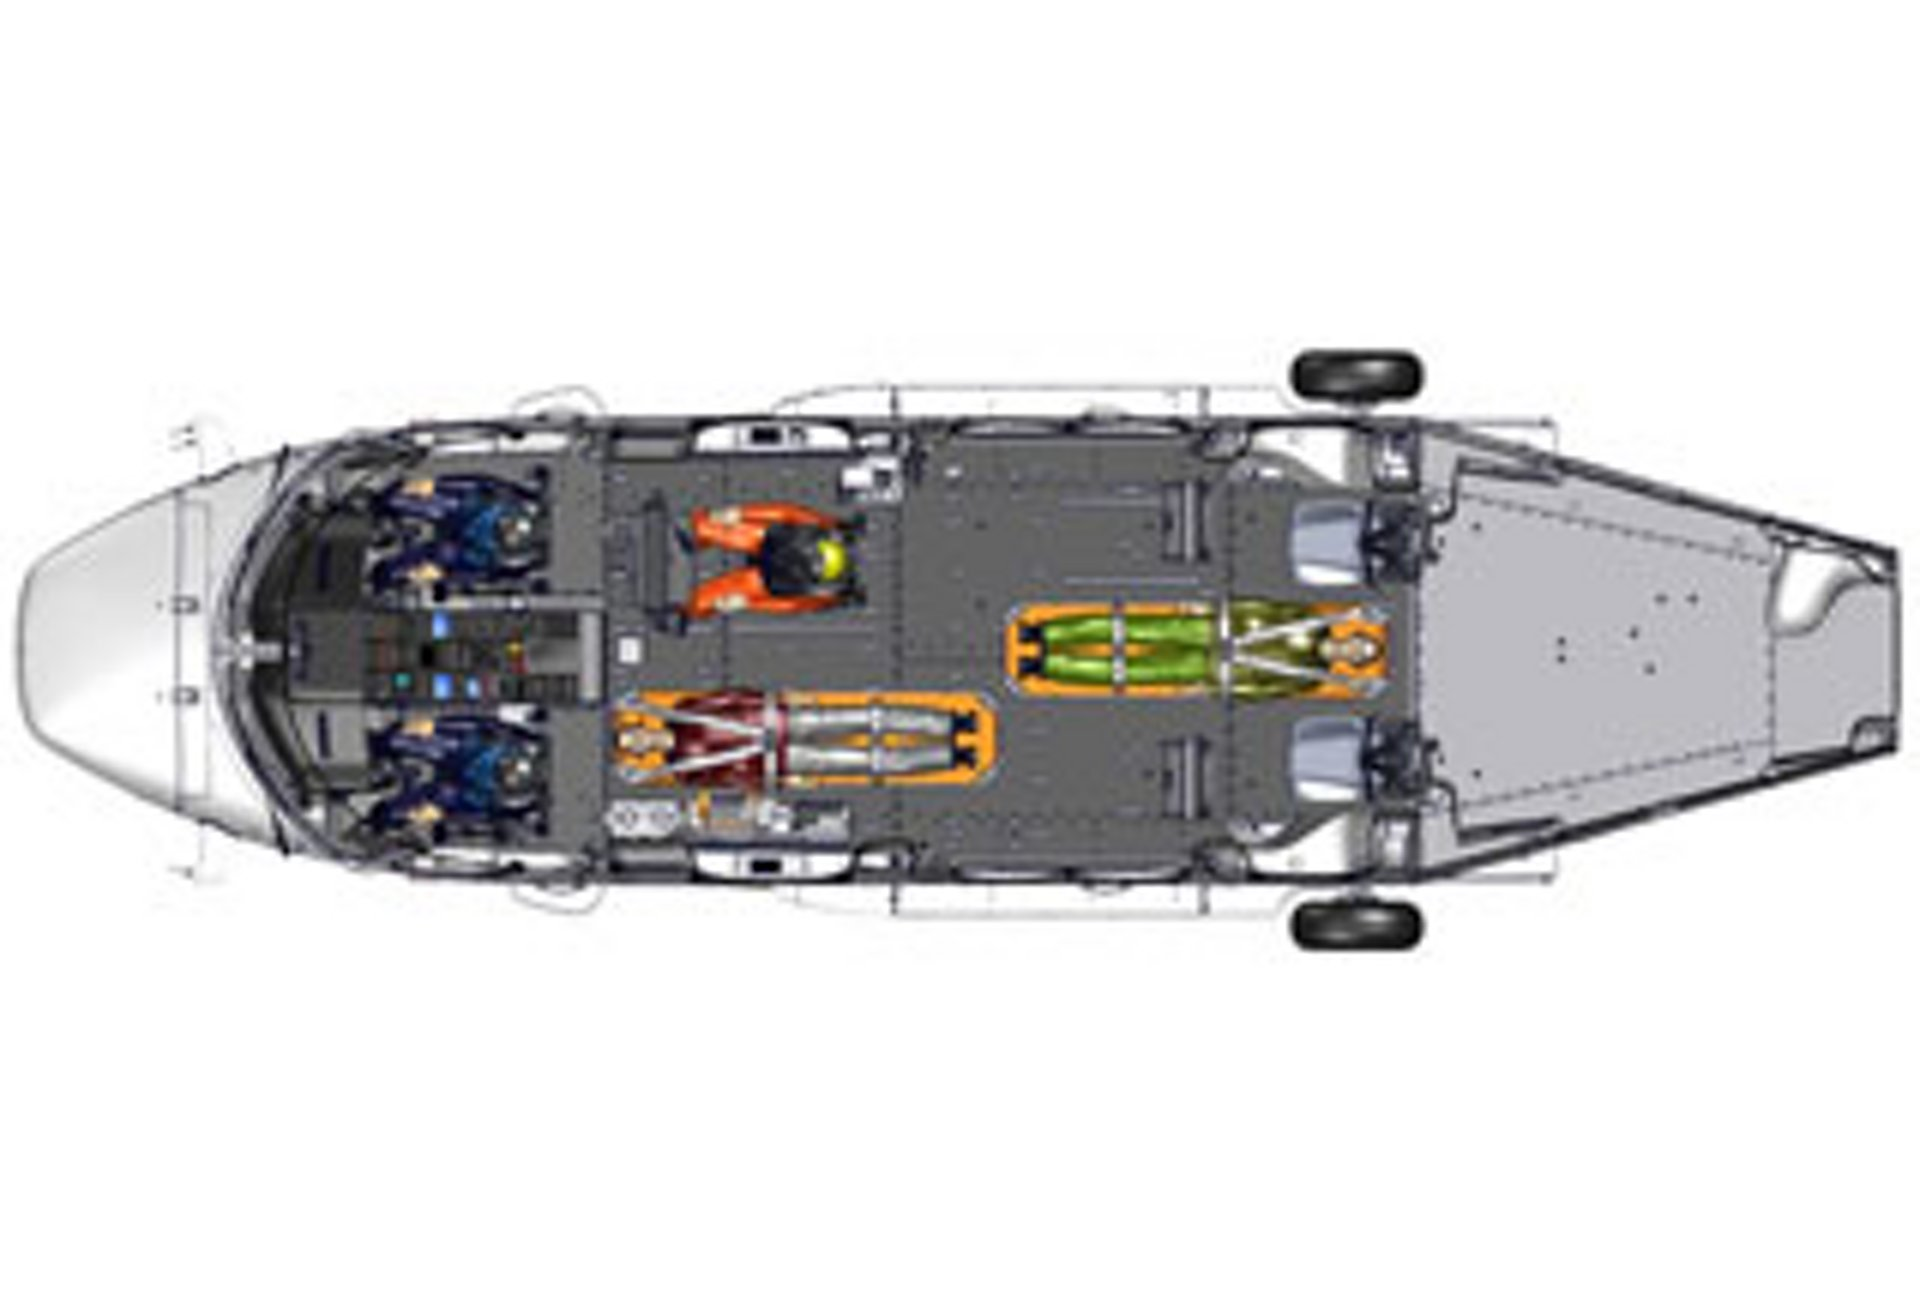 Diagram of an Airbus H175 helicopter cabin optimised for search and rescue operations.